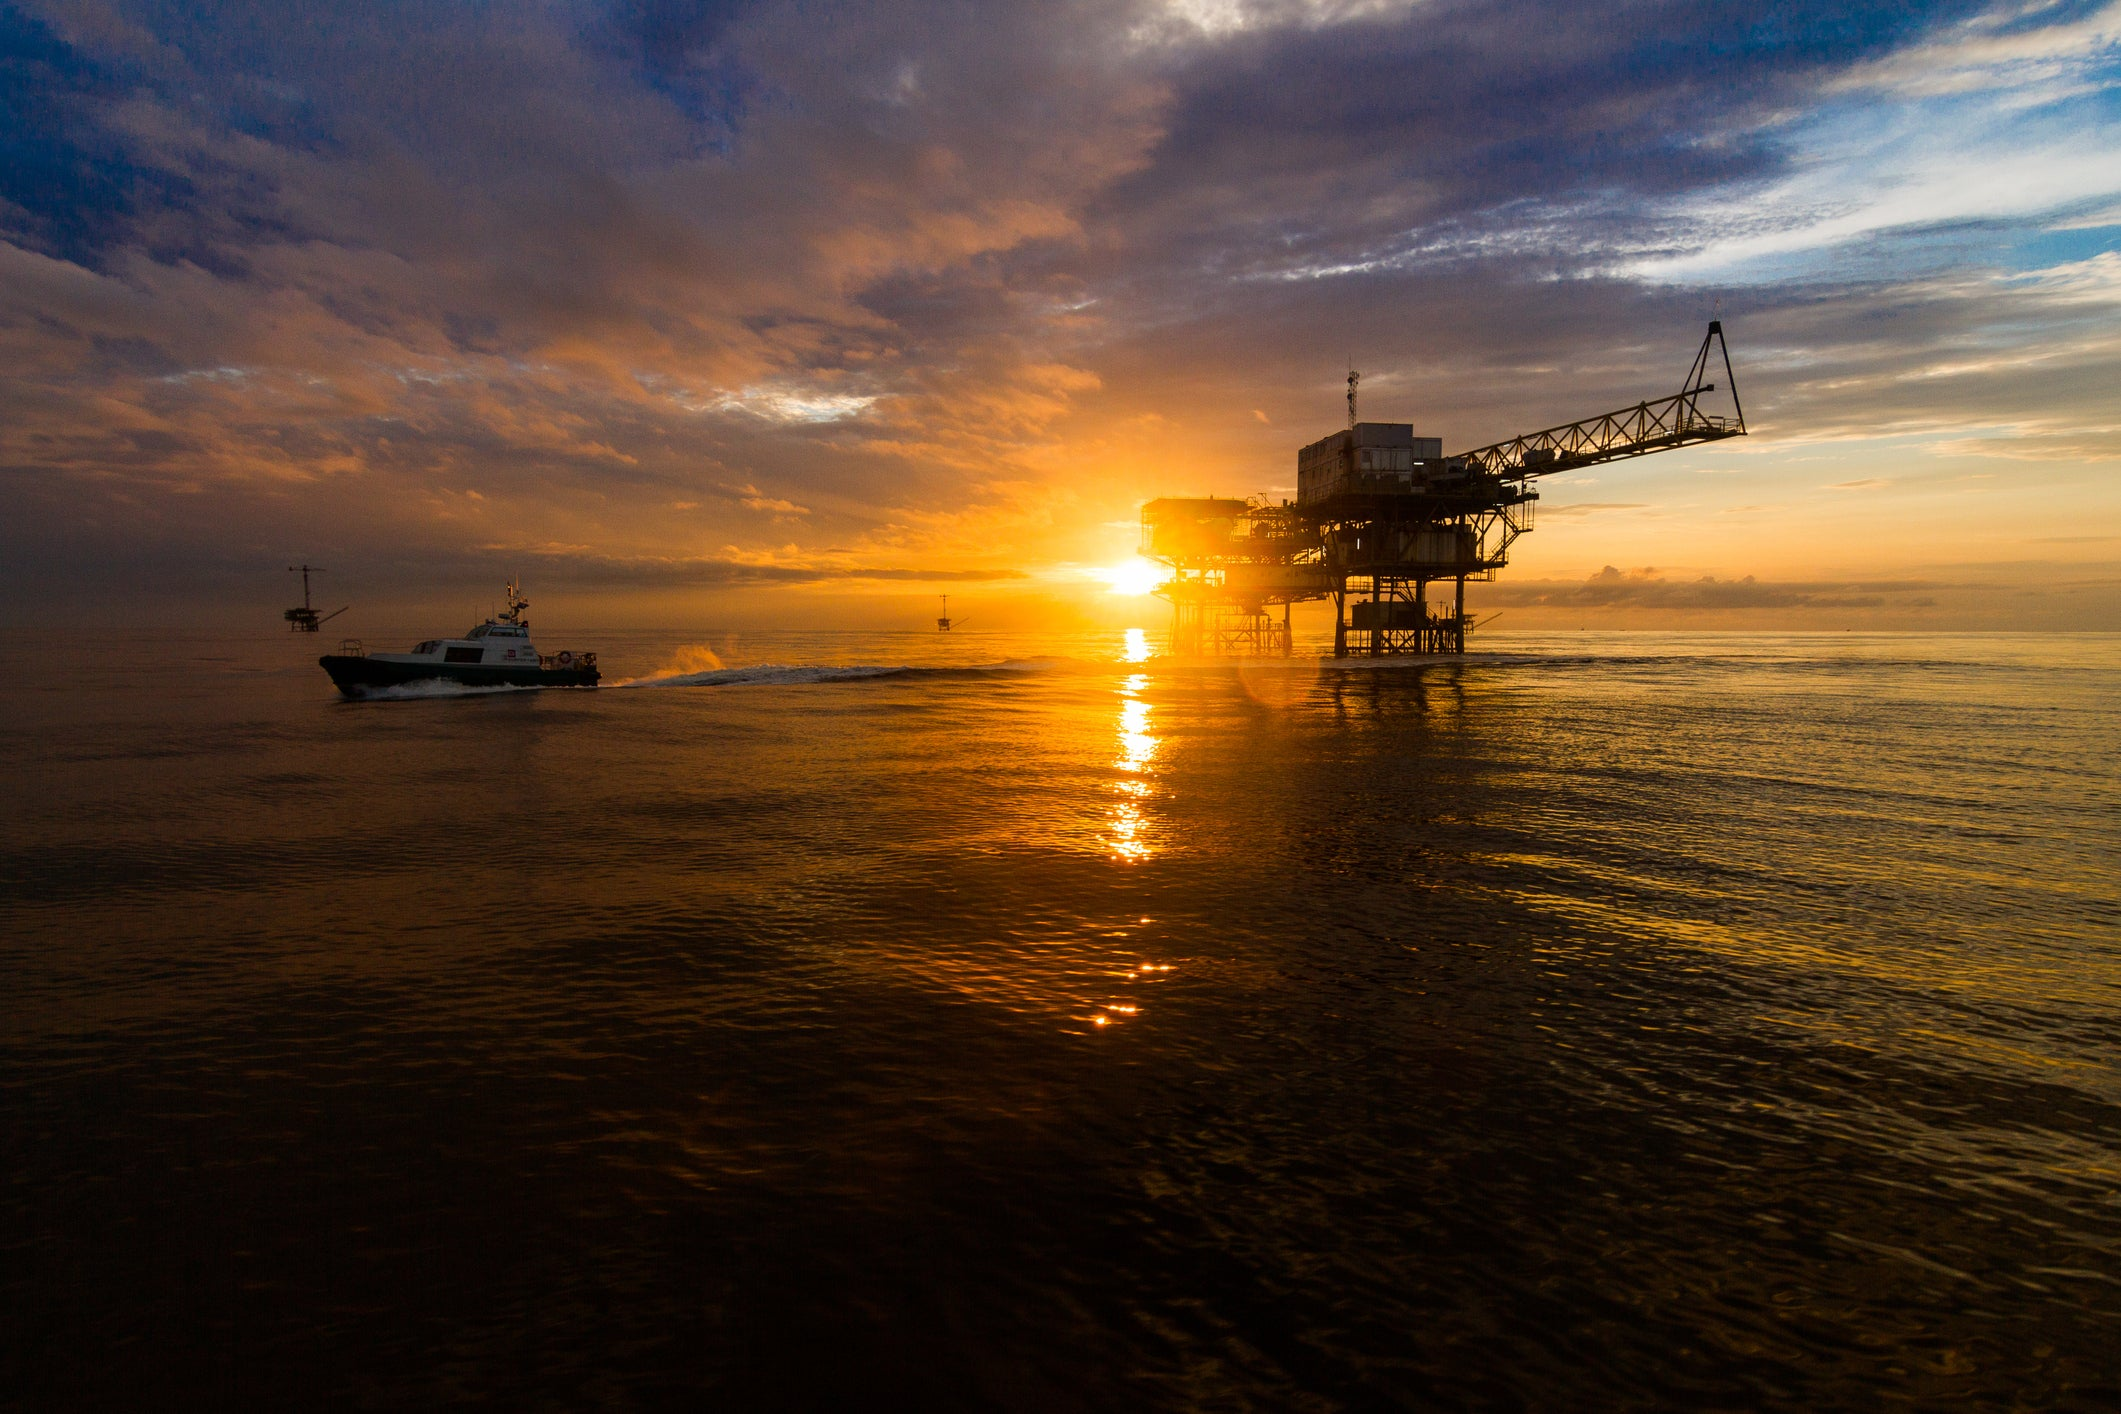 A ship near an offshore drilling rig at sunset.